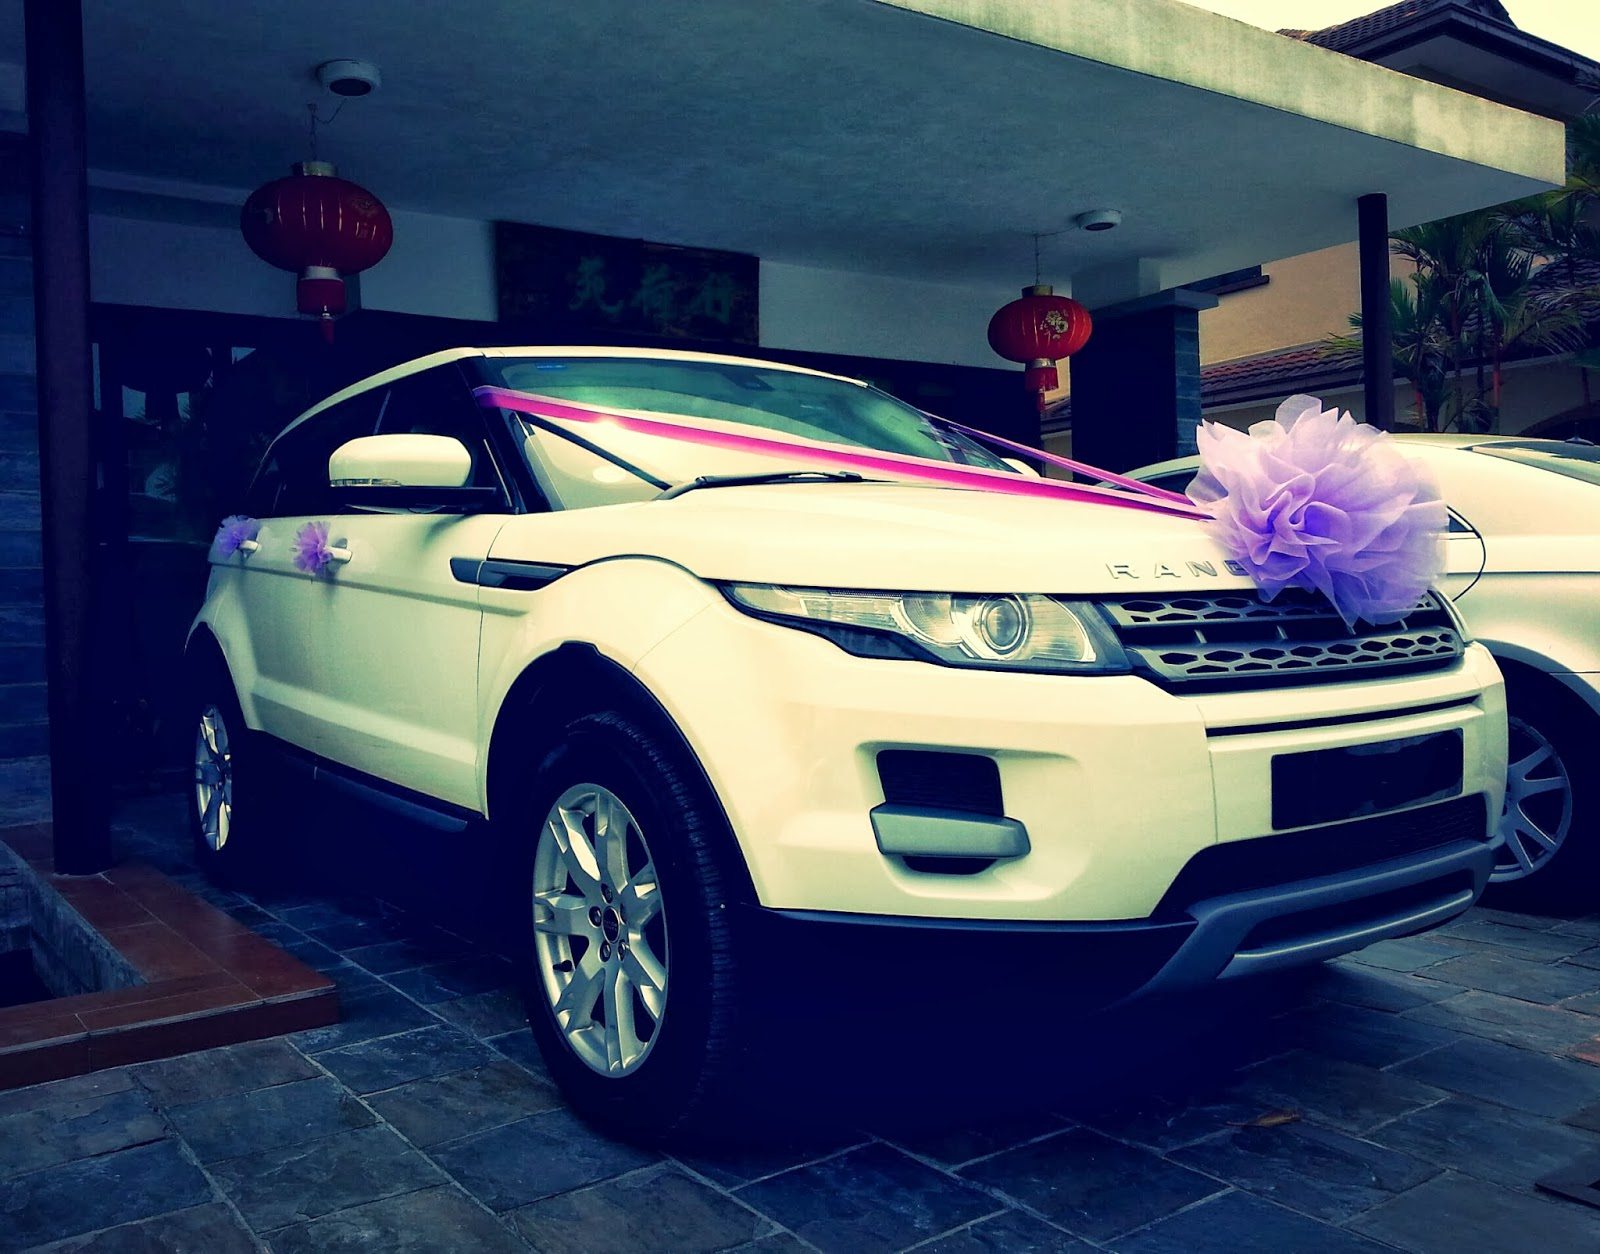 Range Rover Evoque Purple Decorations Bridal Car Car